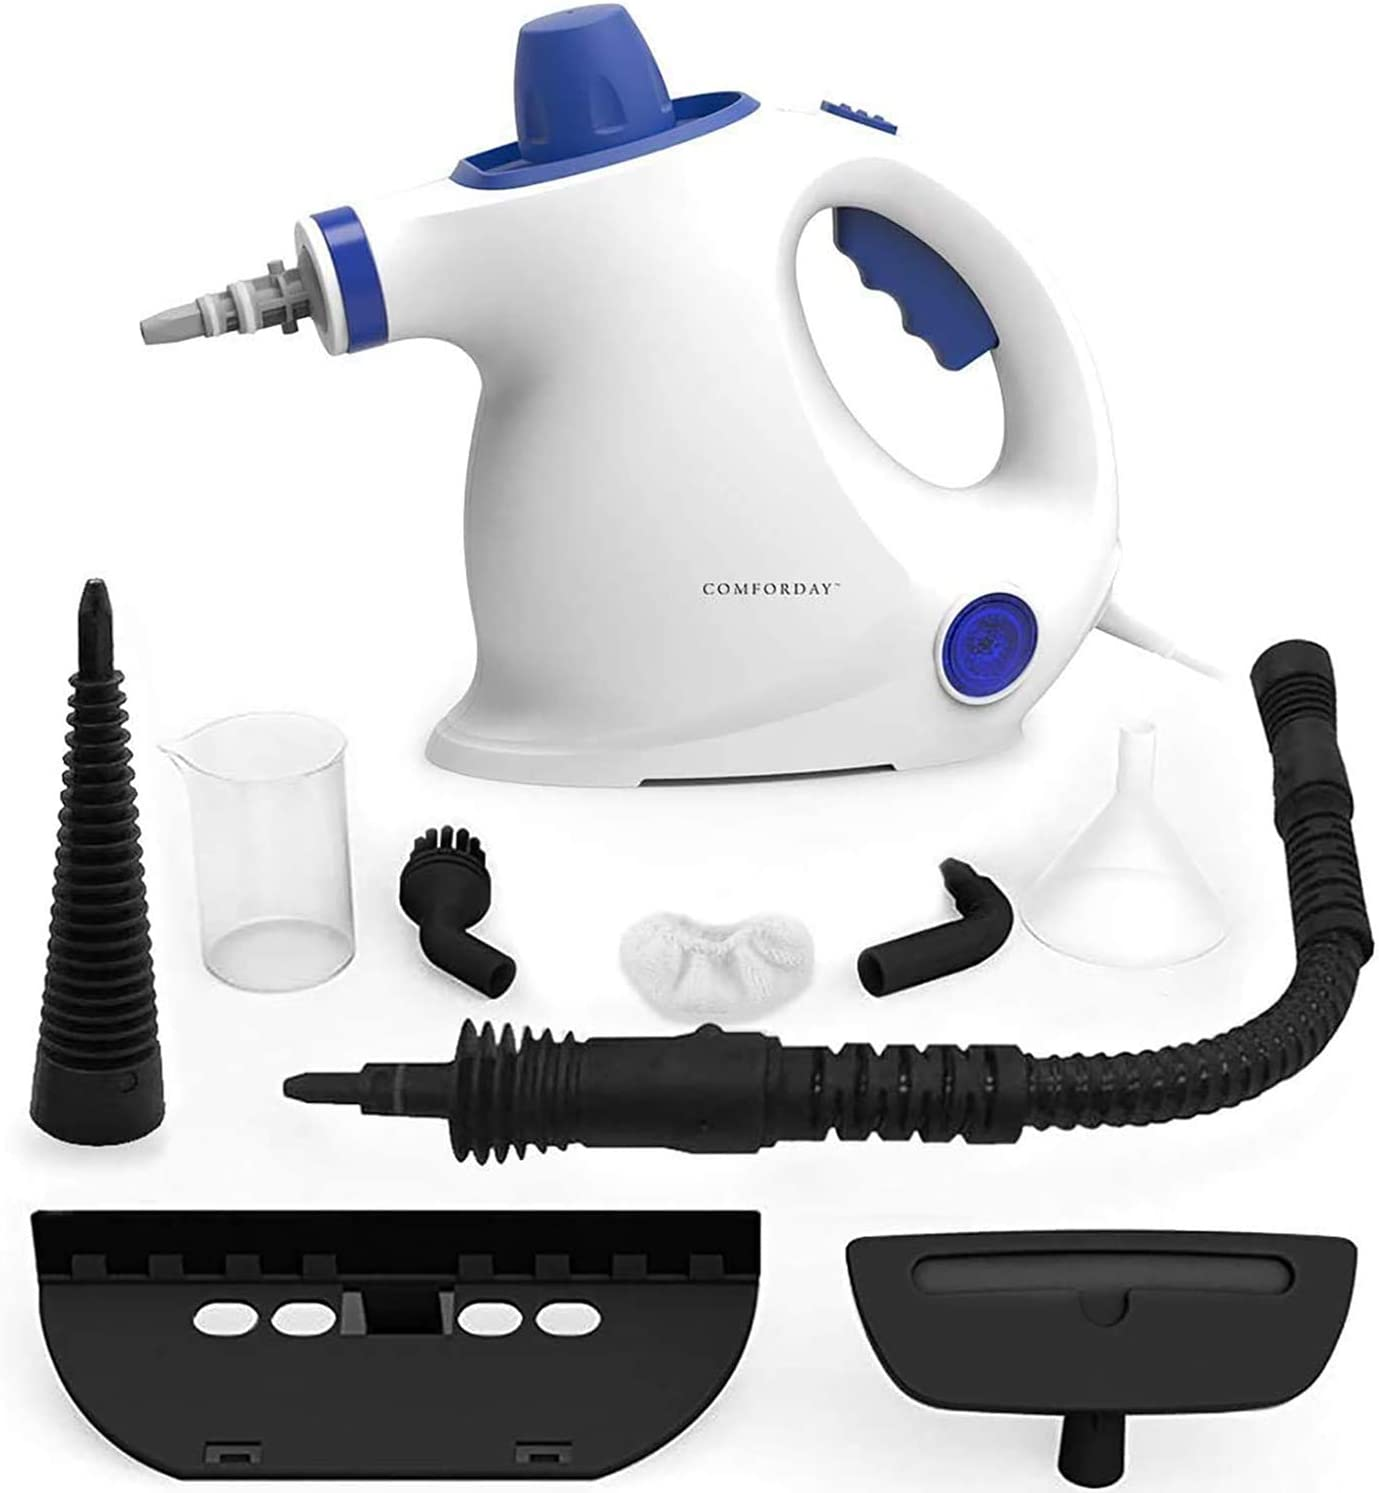 Comforday Steam Cleaner - Multi-Purpose Handheld Pressurized Steamer Cleaner with 9-Piece Accessories for Stain Removal, Carpets, Curtains, Car Seats, Floor, White (UK Plug)